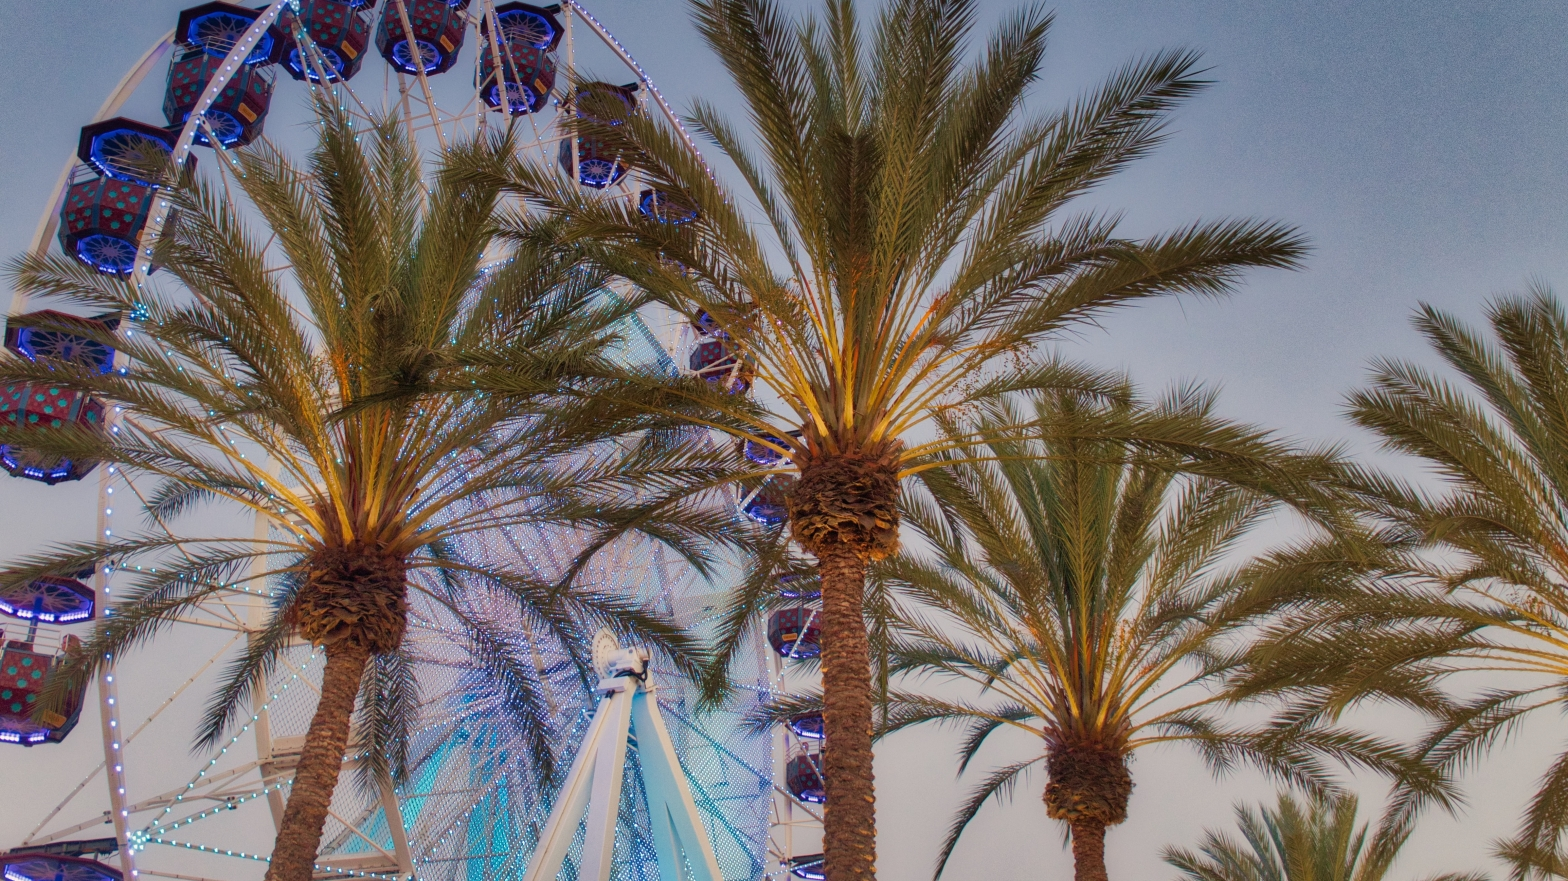 Palm trees with Ferris wheel